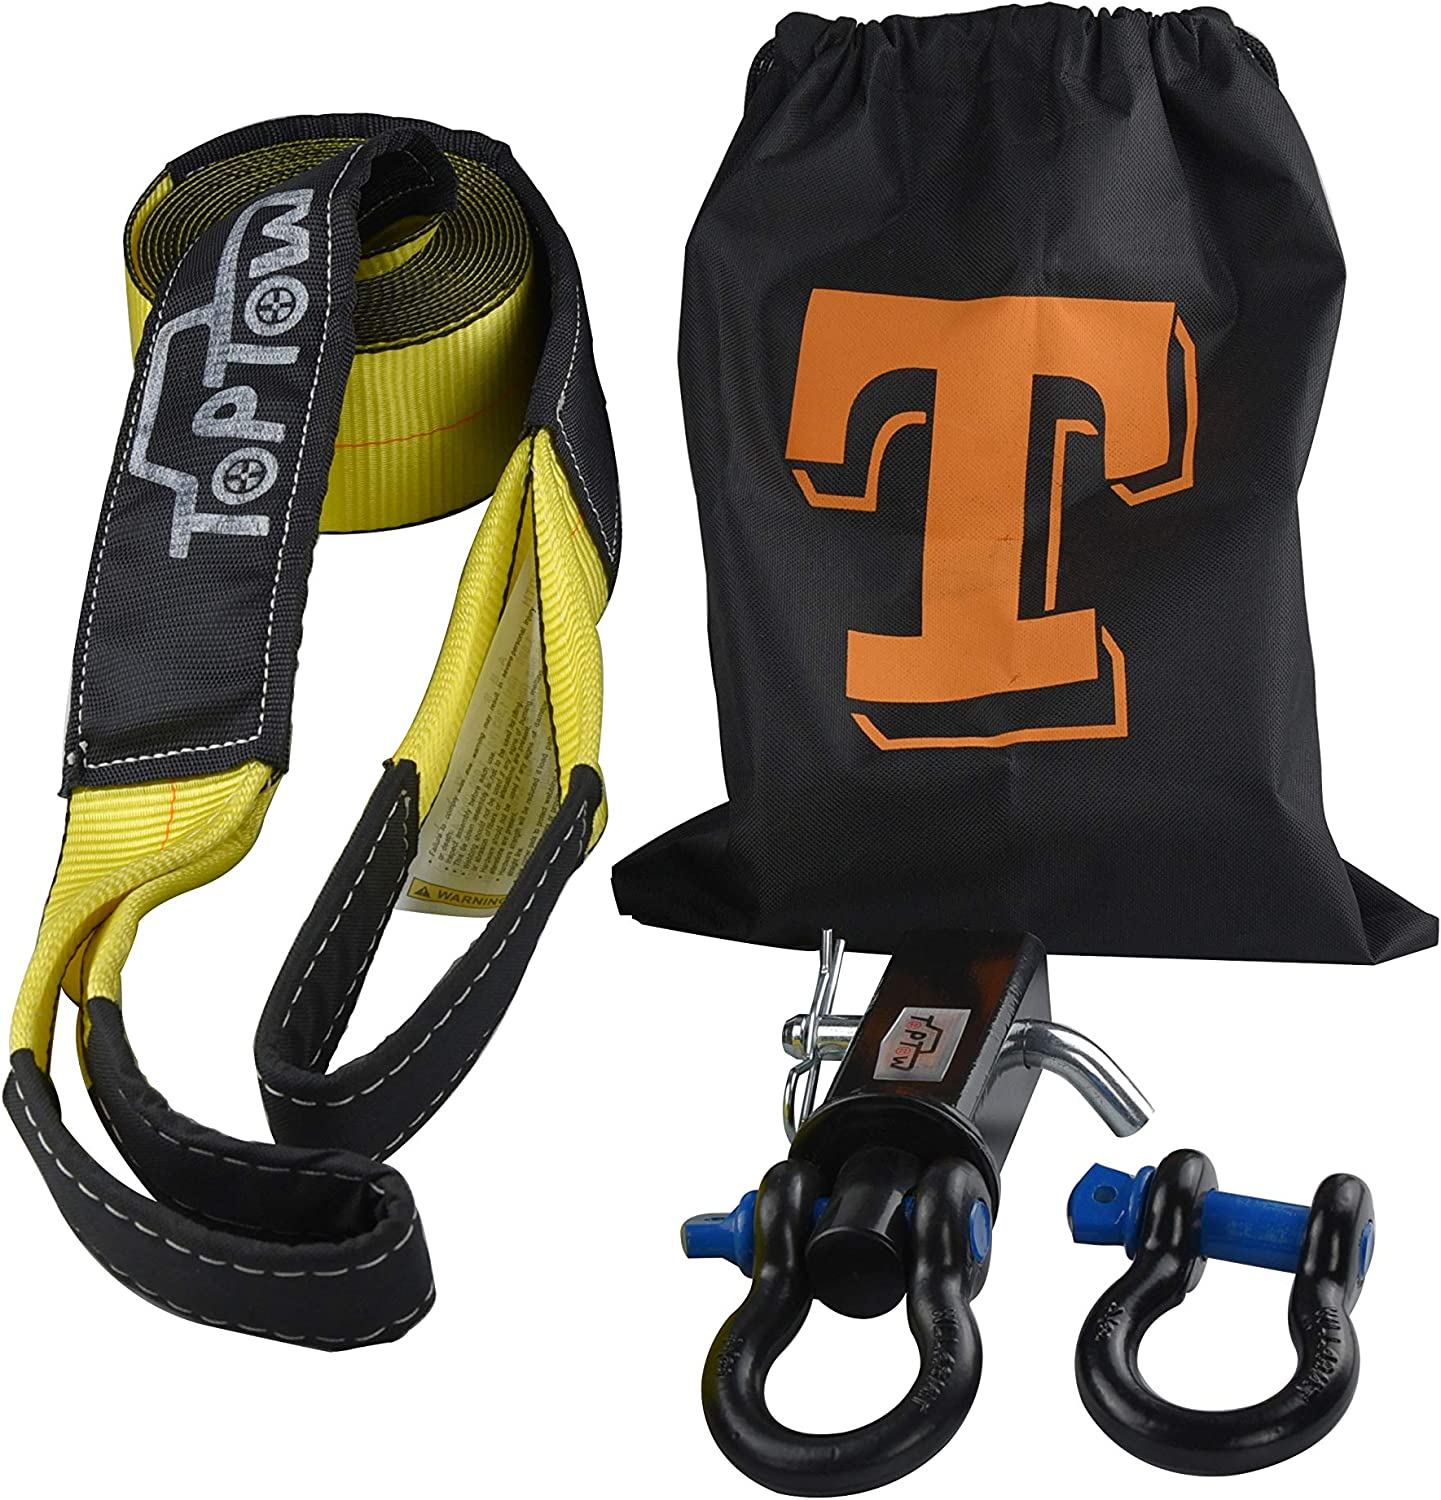 Storage Bag Emergency Off Road Truck Accessories TOPTOW 63713 Tow Strap Recovery Kit- Swivel Recovery Shackle Hitch 2 Shank with Hitch Pin 3 X 20 Tow Strap 3//4 Bow Shackle 4.75T